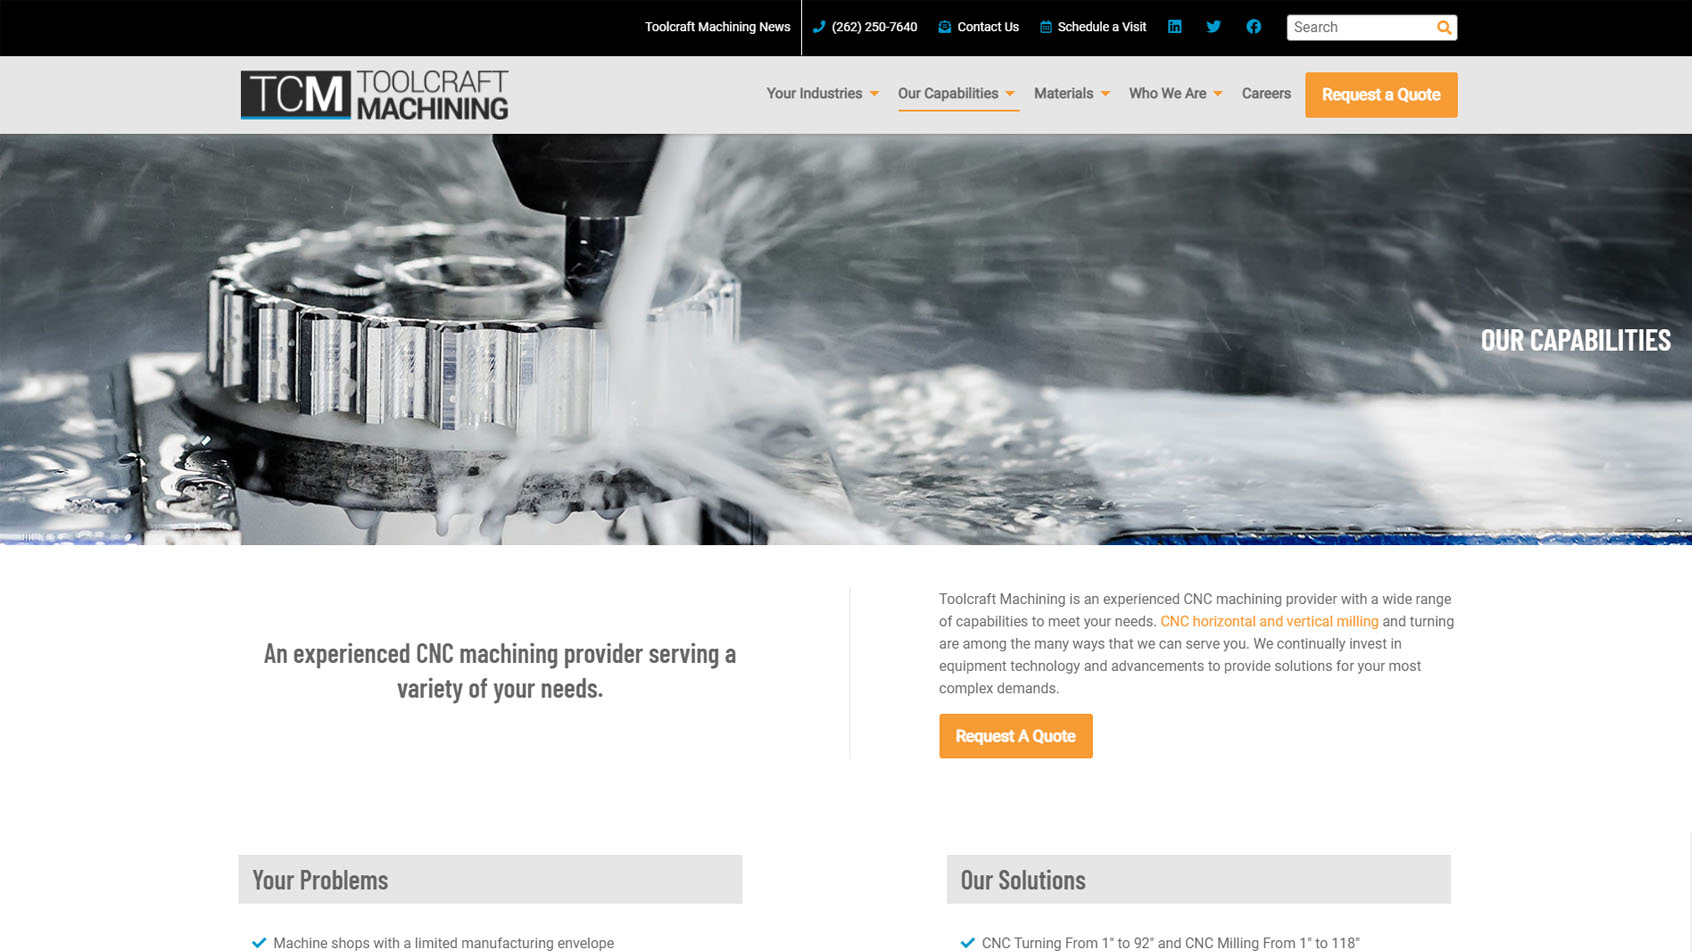 Toolcraft capabilities page